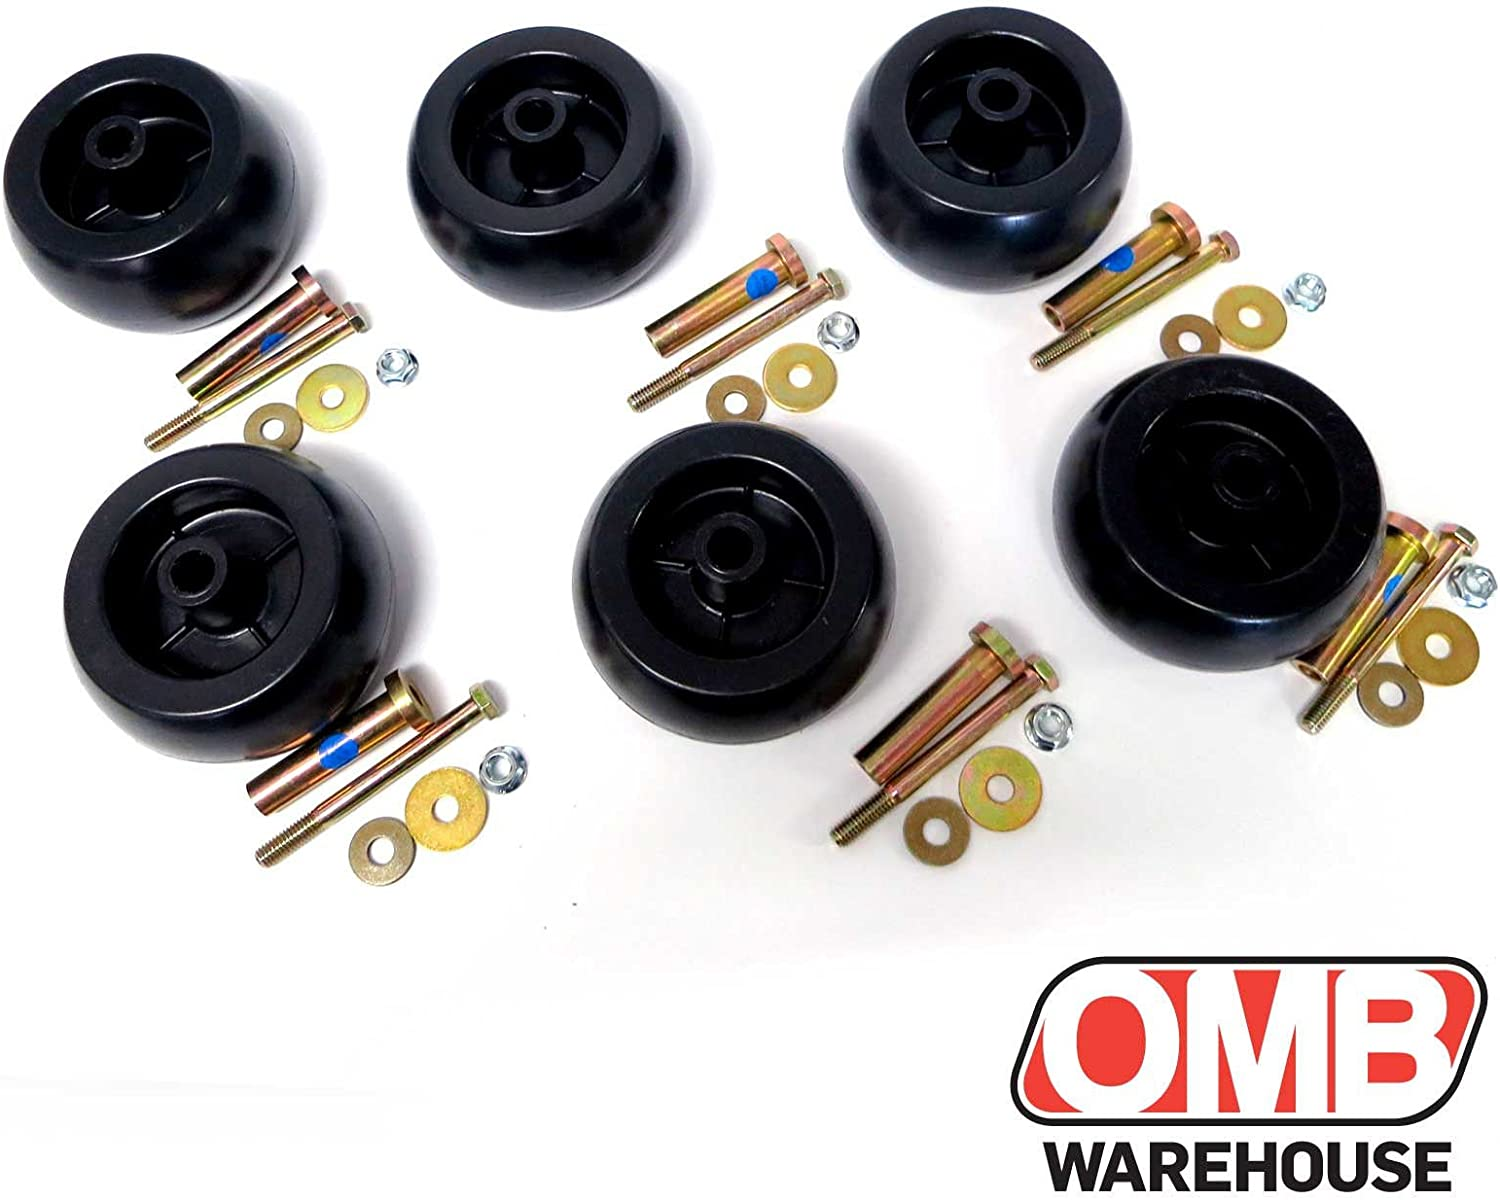 103-4051 Six 6 Deck Wheel Roller Kits with Hardware for Exmark Mower 103-3168